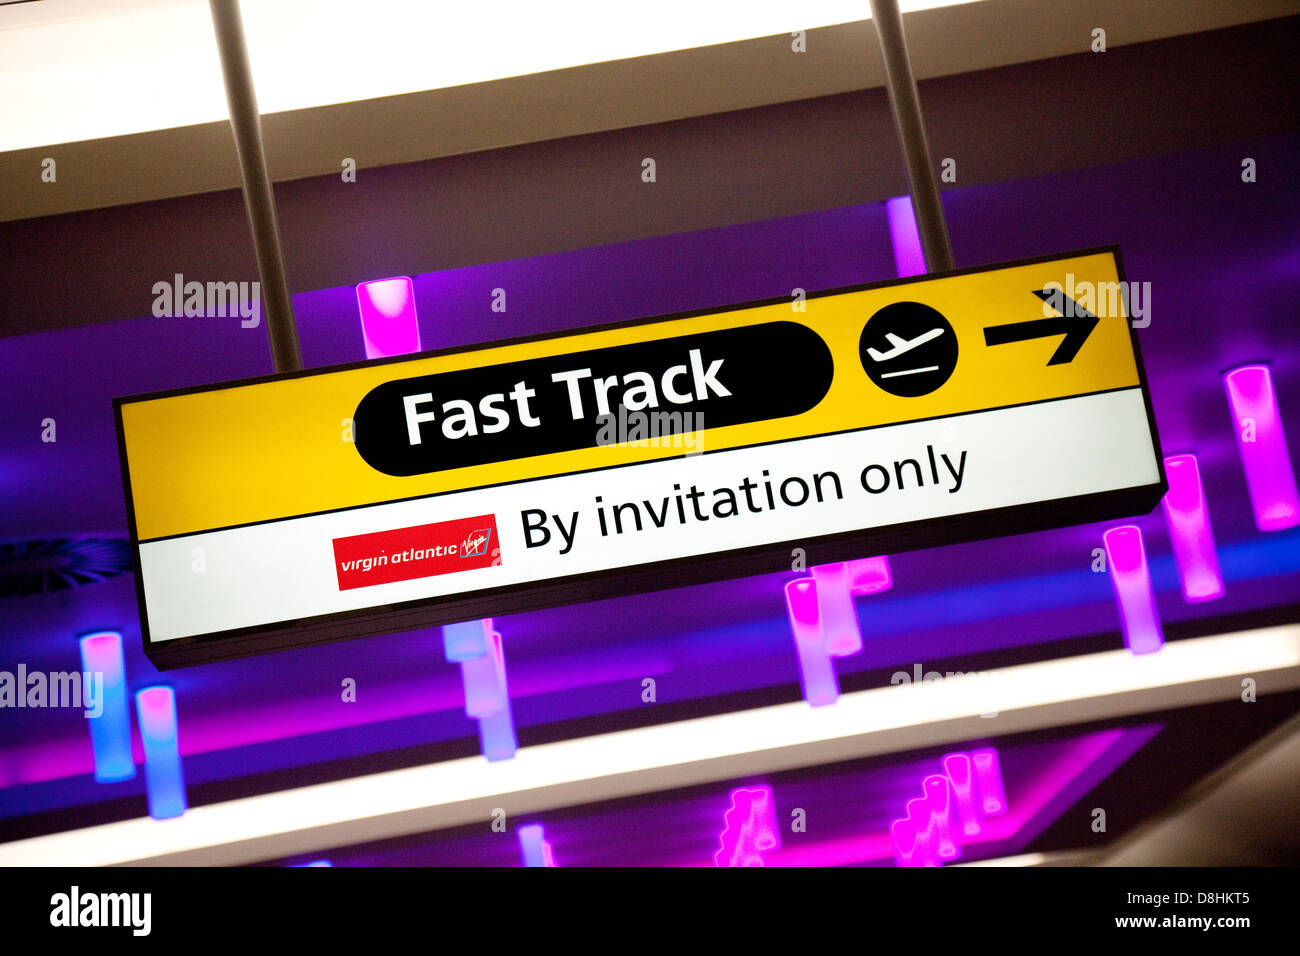 Virgin Atlantic Fast Track sign, terminal 3, Heathrow airport UK - Stock Image